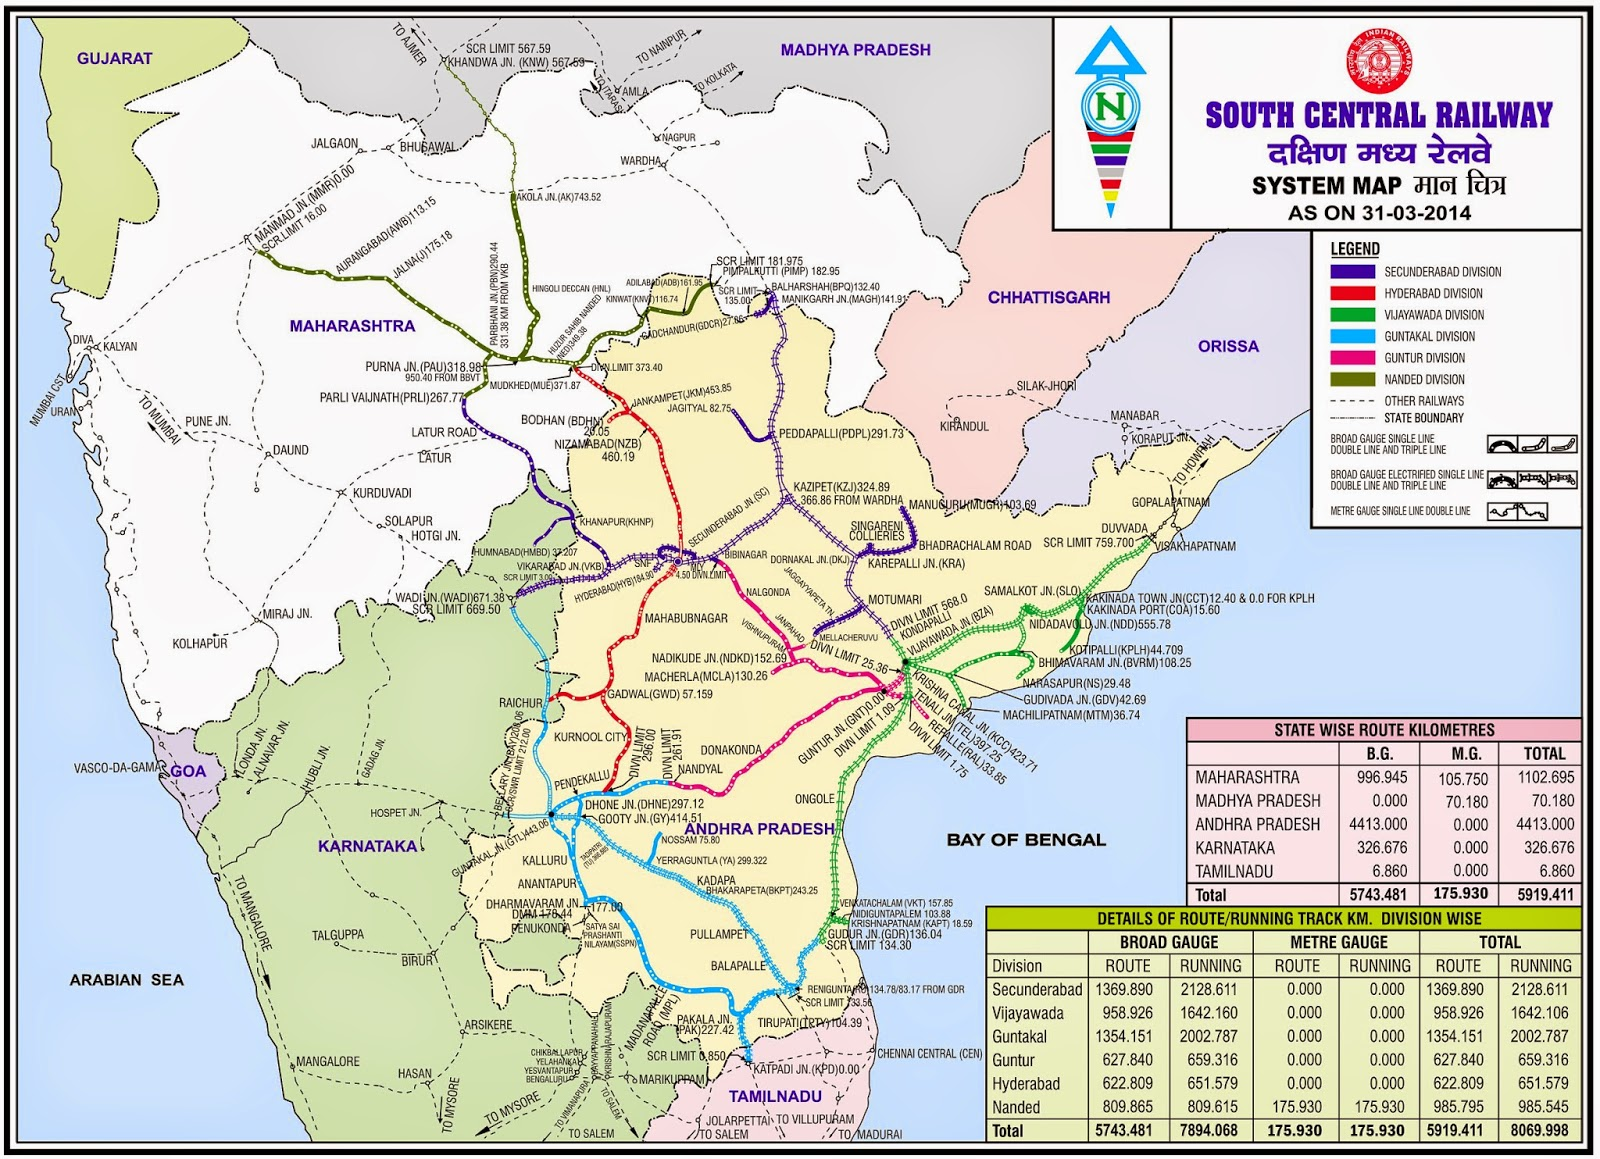 Zonal Railways! South Central Railway of India Railways